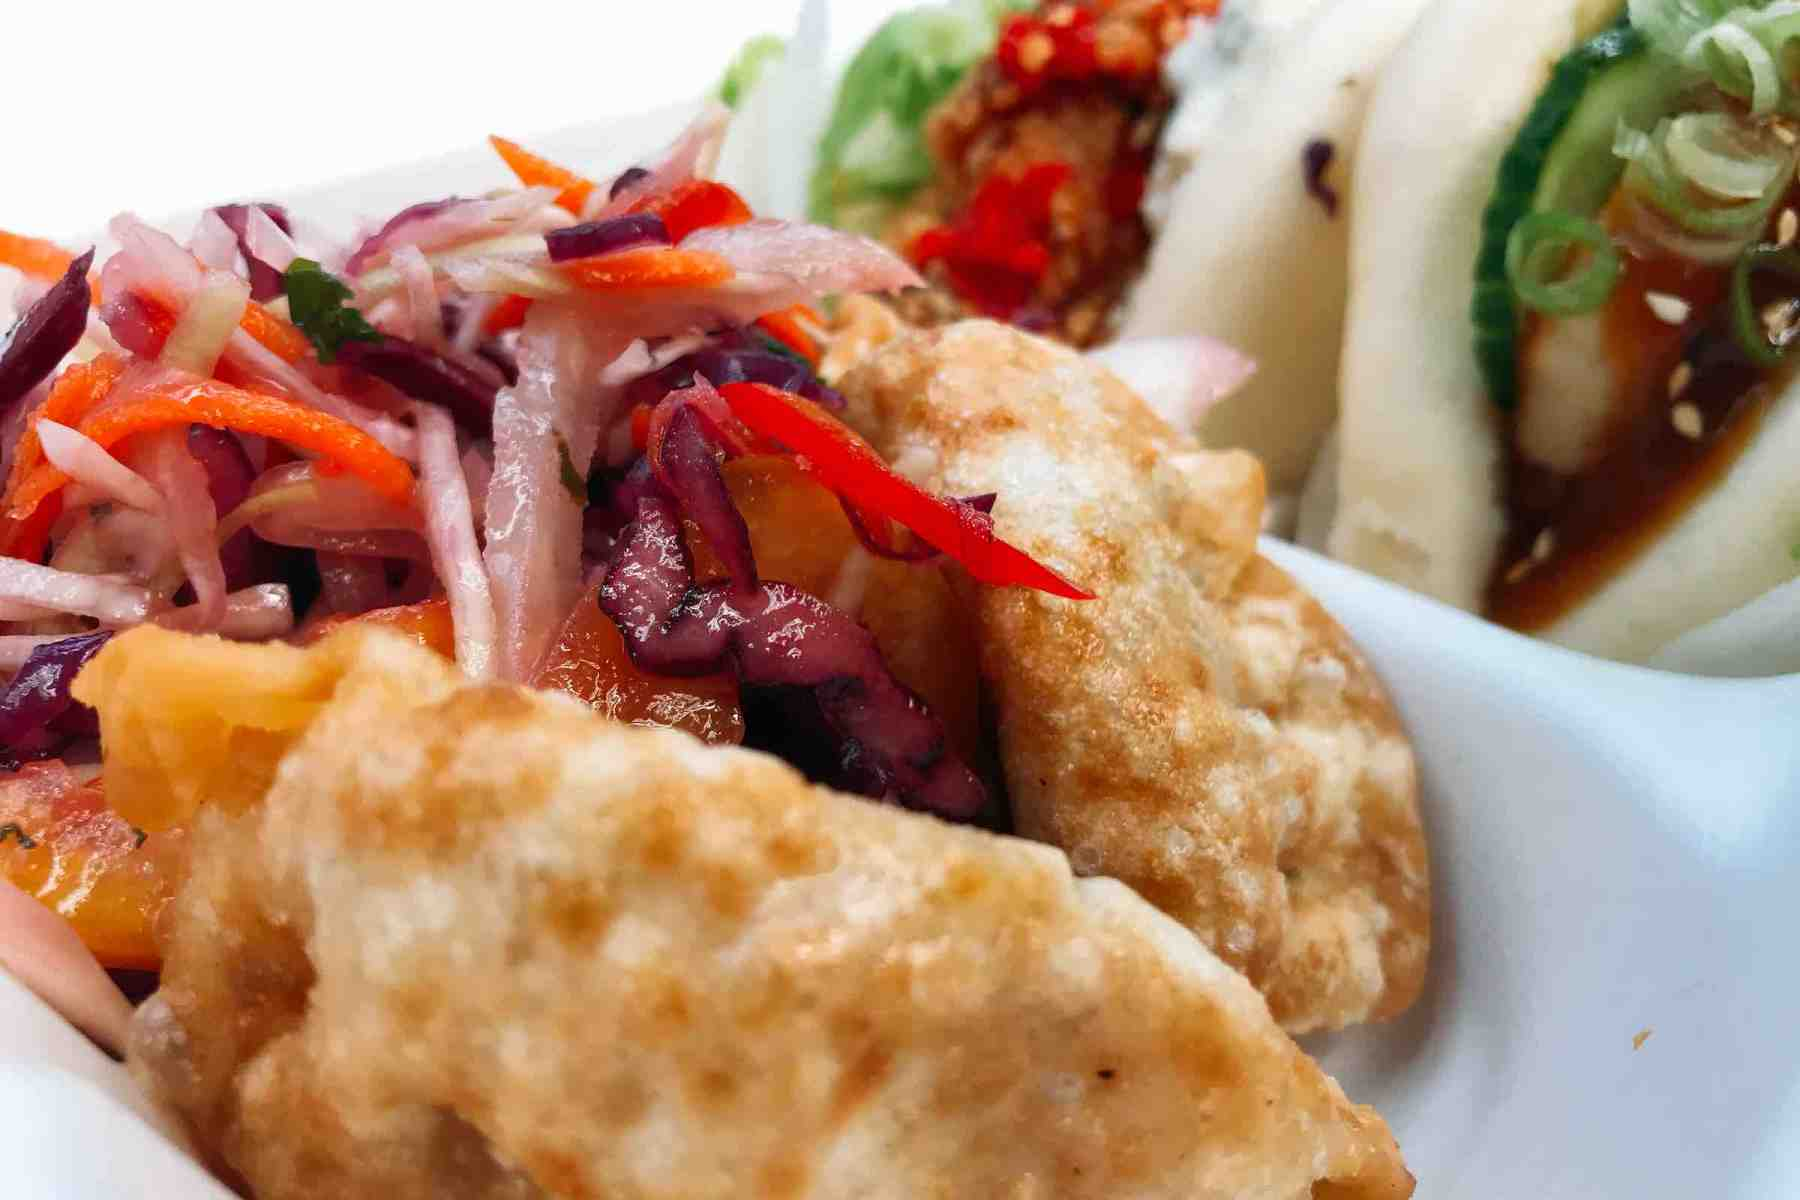 Deep-fried gyoza with slaw from Spitalfields Market in London